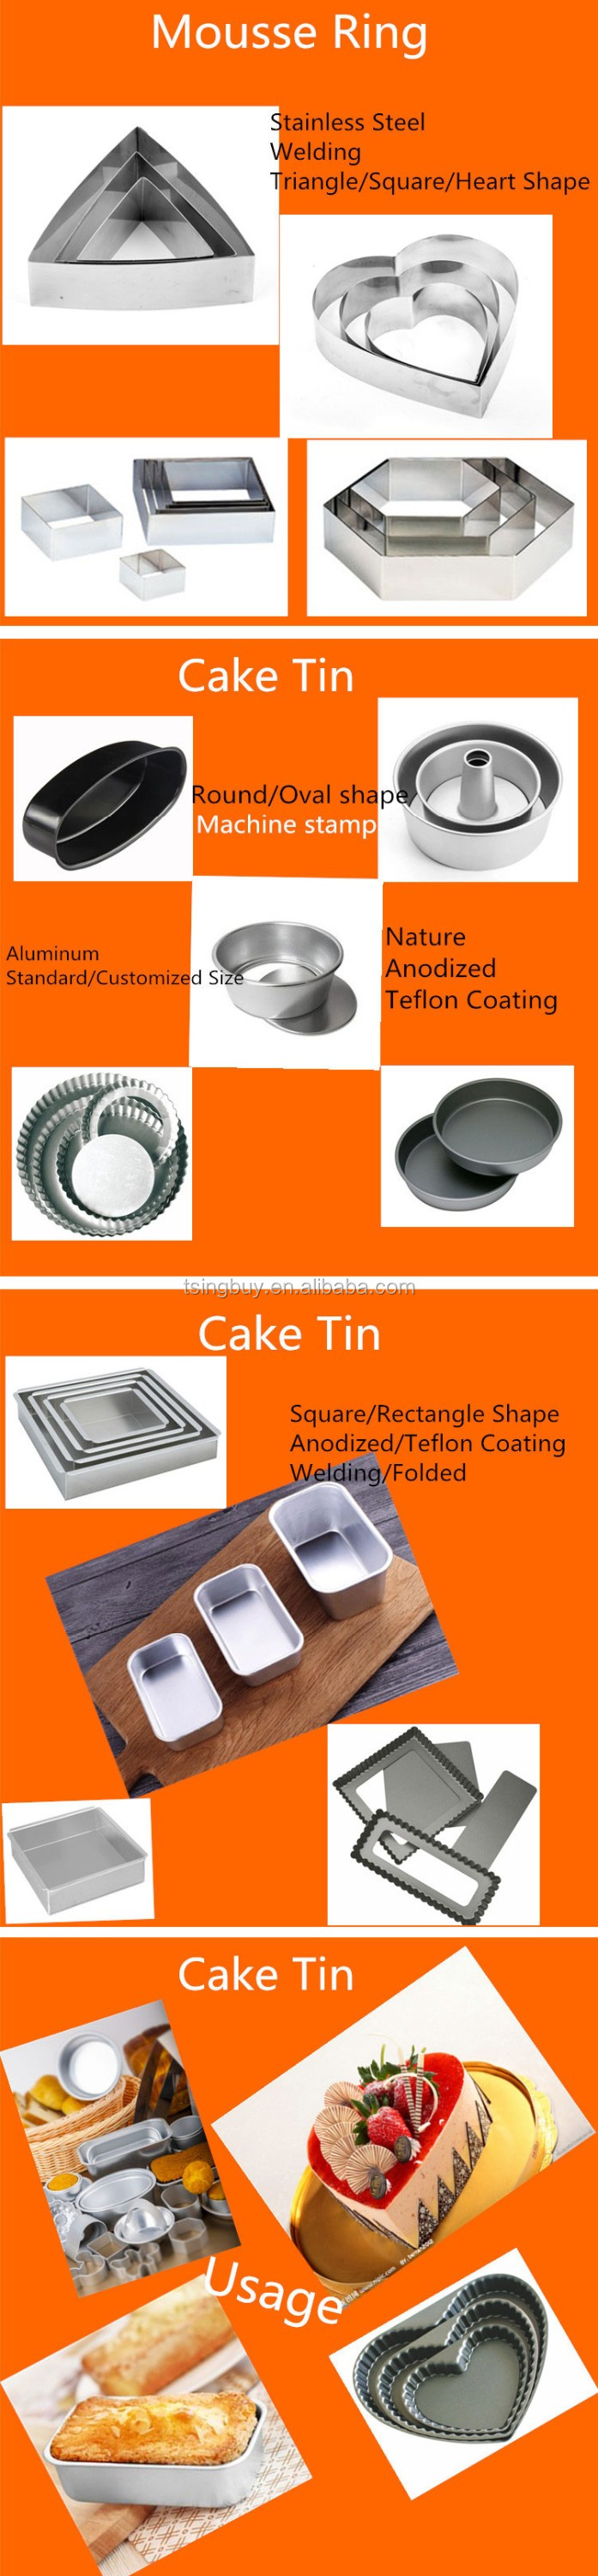 Stainless Steel Diy Dessert Ring With Pusher Mousse Cake Mold - Buy Cake  Mold,Mousse Cake Mold,Dessert Ring Product on Alibaba com